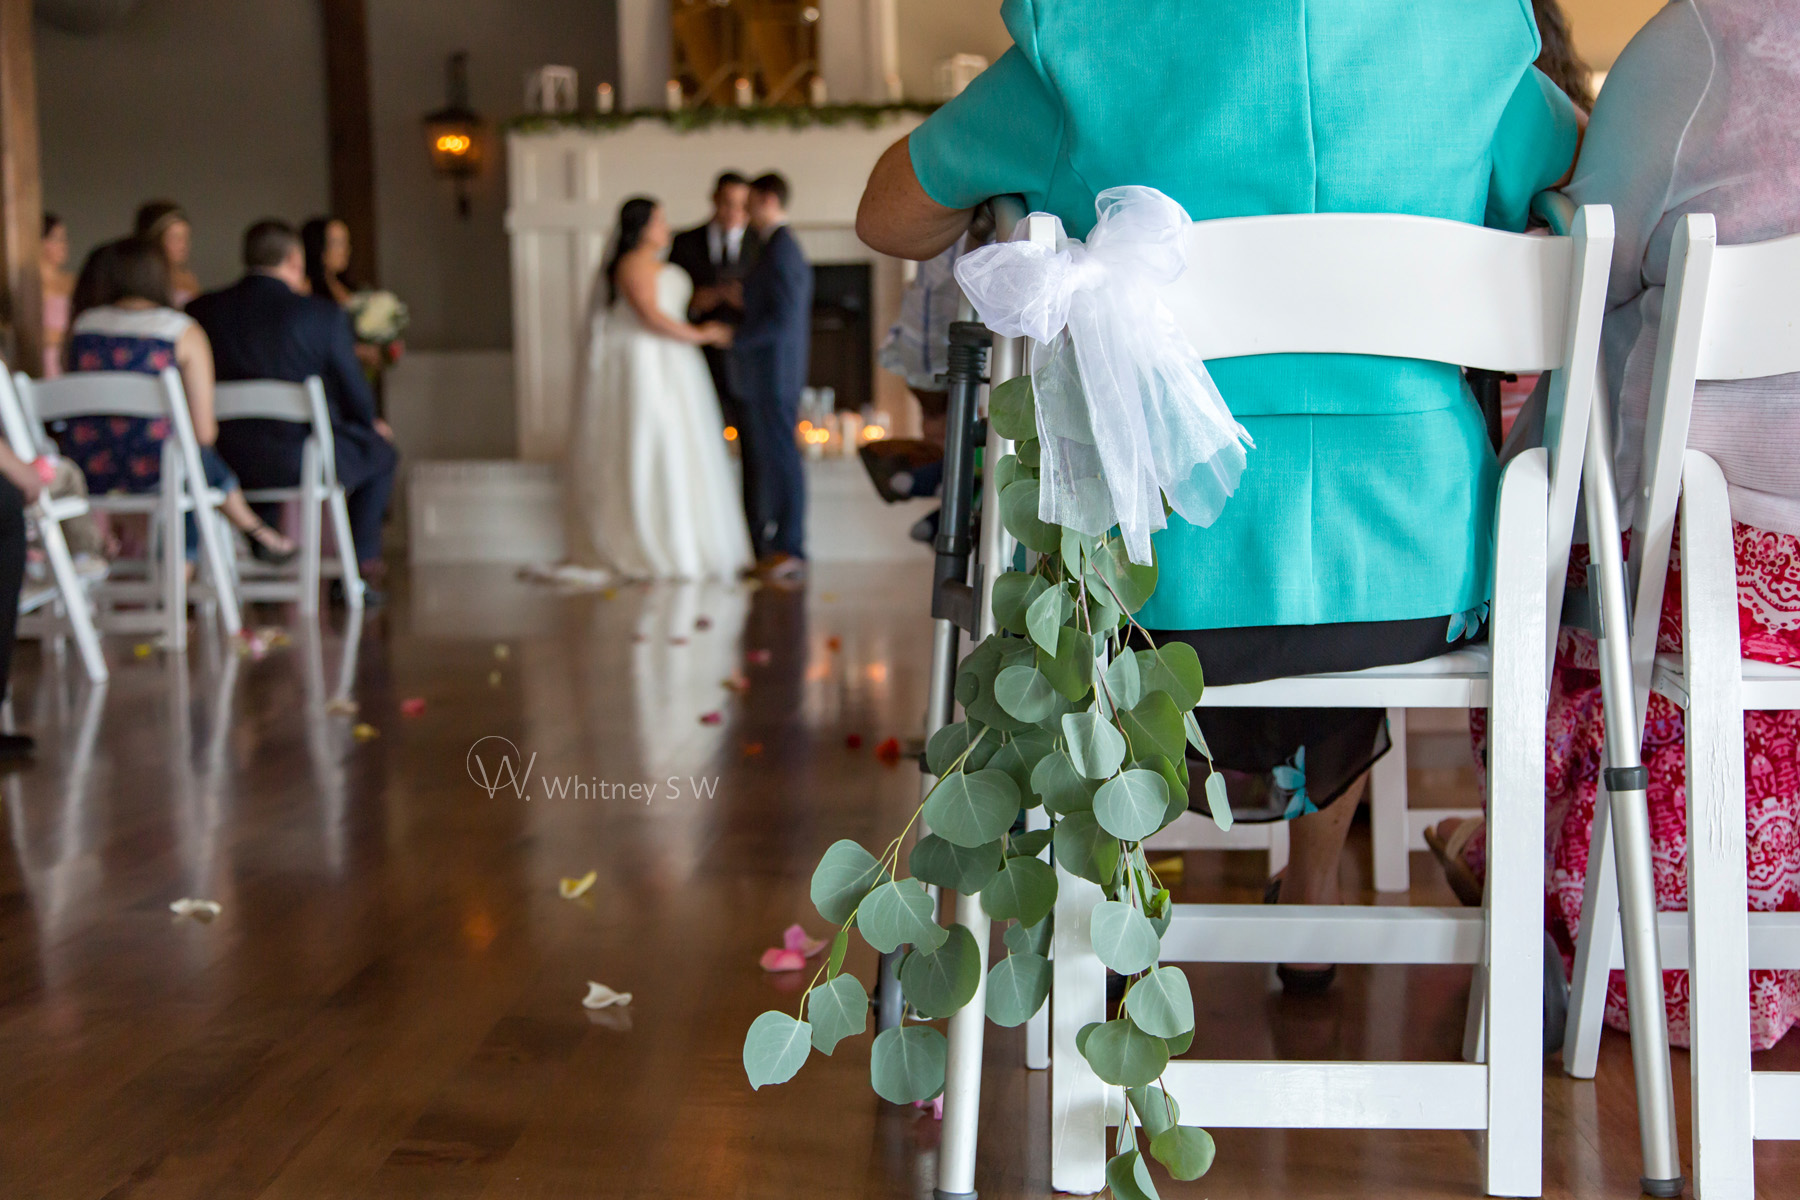 SimpsonFalinWedding_Photography by Whitney S Williams (145).jpg